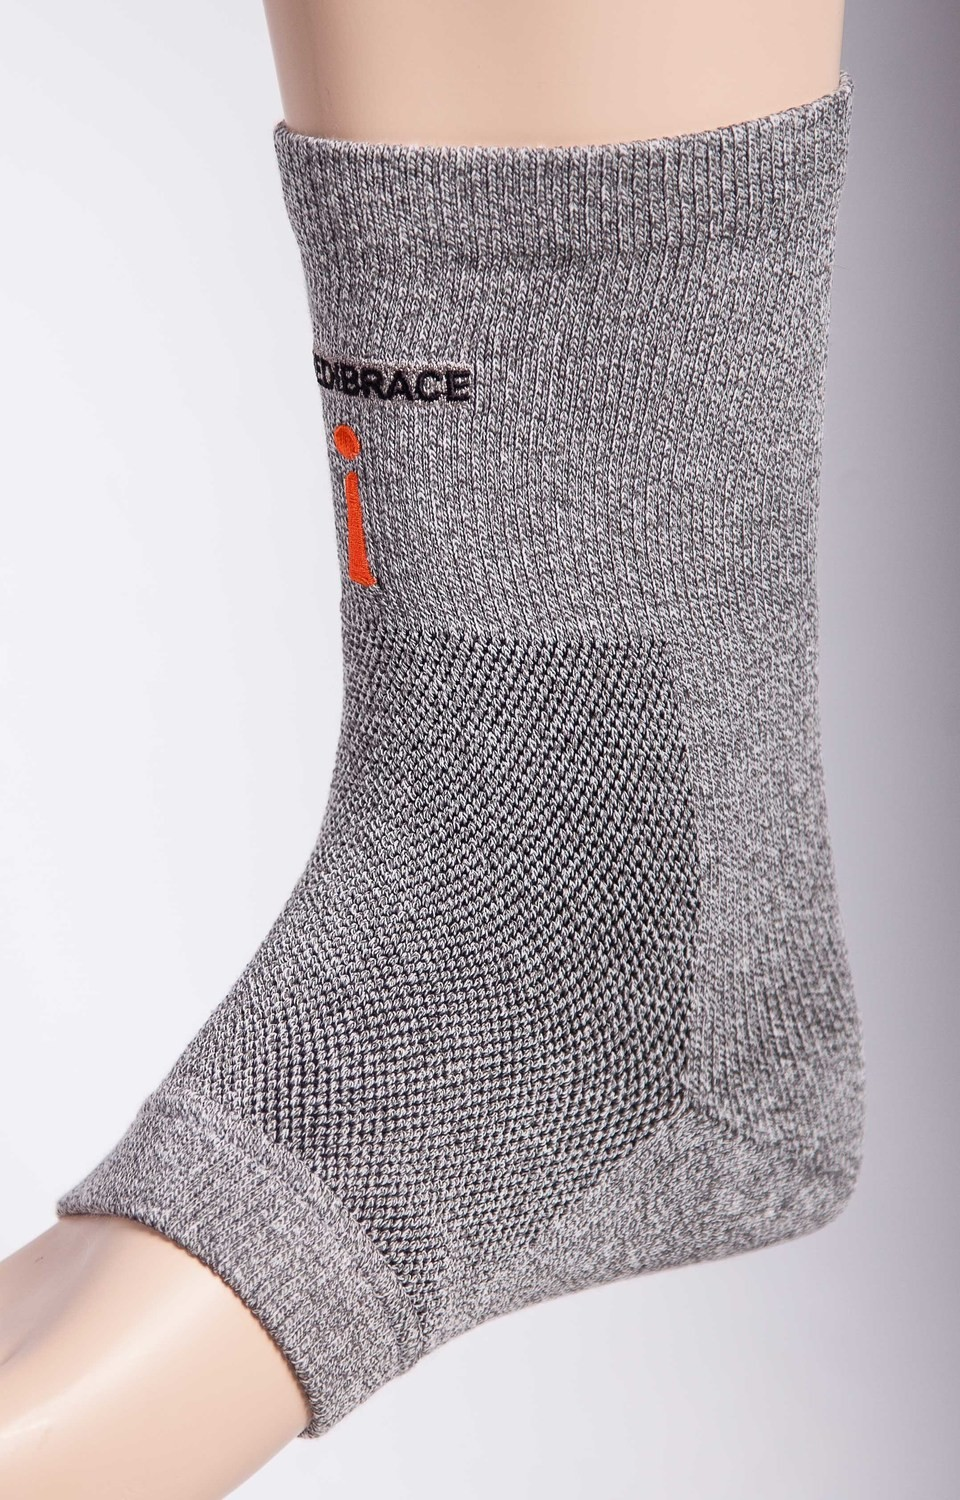 Ankle recovery brace with Germanium G707